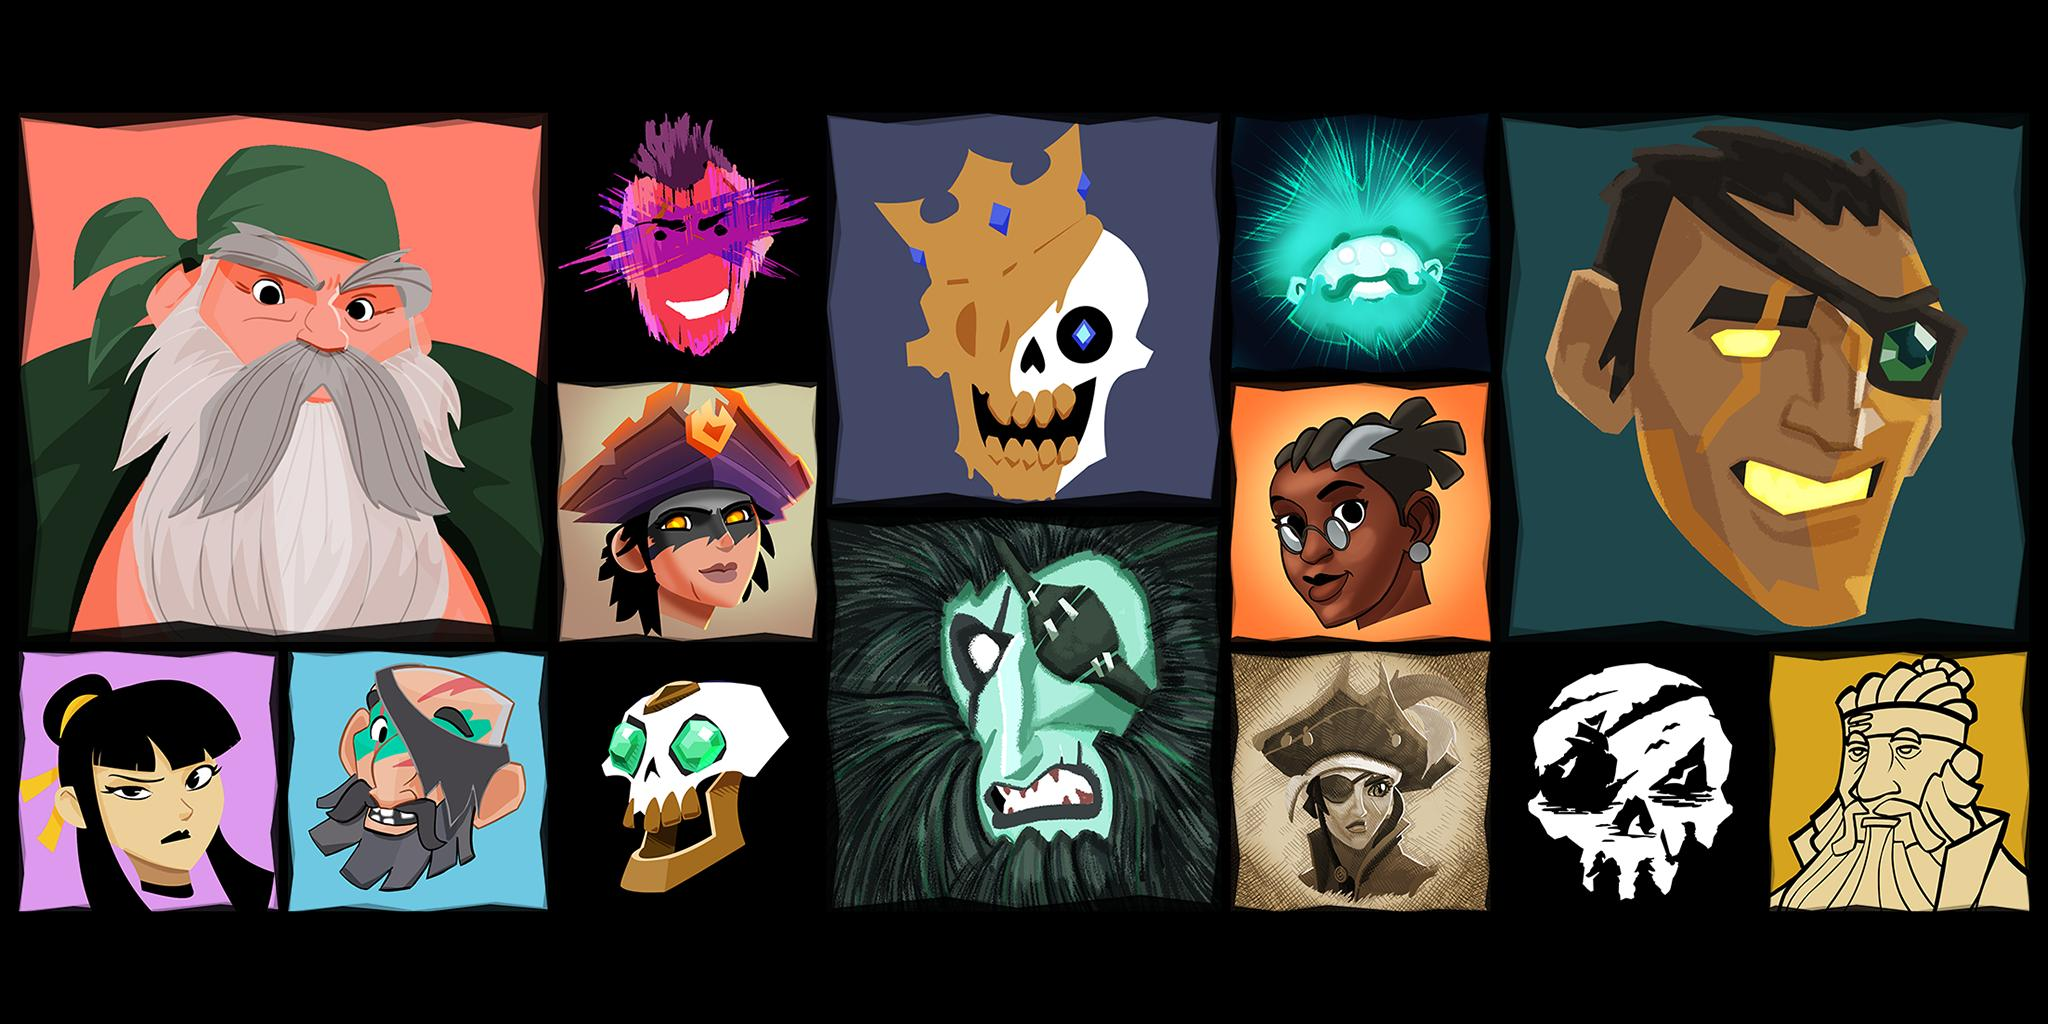 Sea Of Thieves On Twitter Want To Refresh Your Look On Xbox Live We Ve Launched 14 Seaofthieves Gamerpics As Part Of Our First Anniversary Celebrations Which One Will You Be Picking Https T Co Xdz6oaw0yf